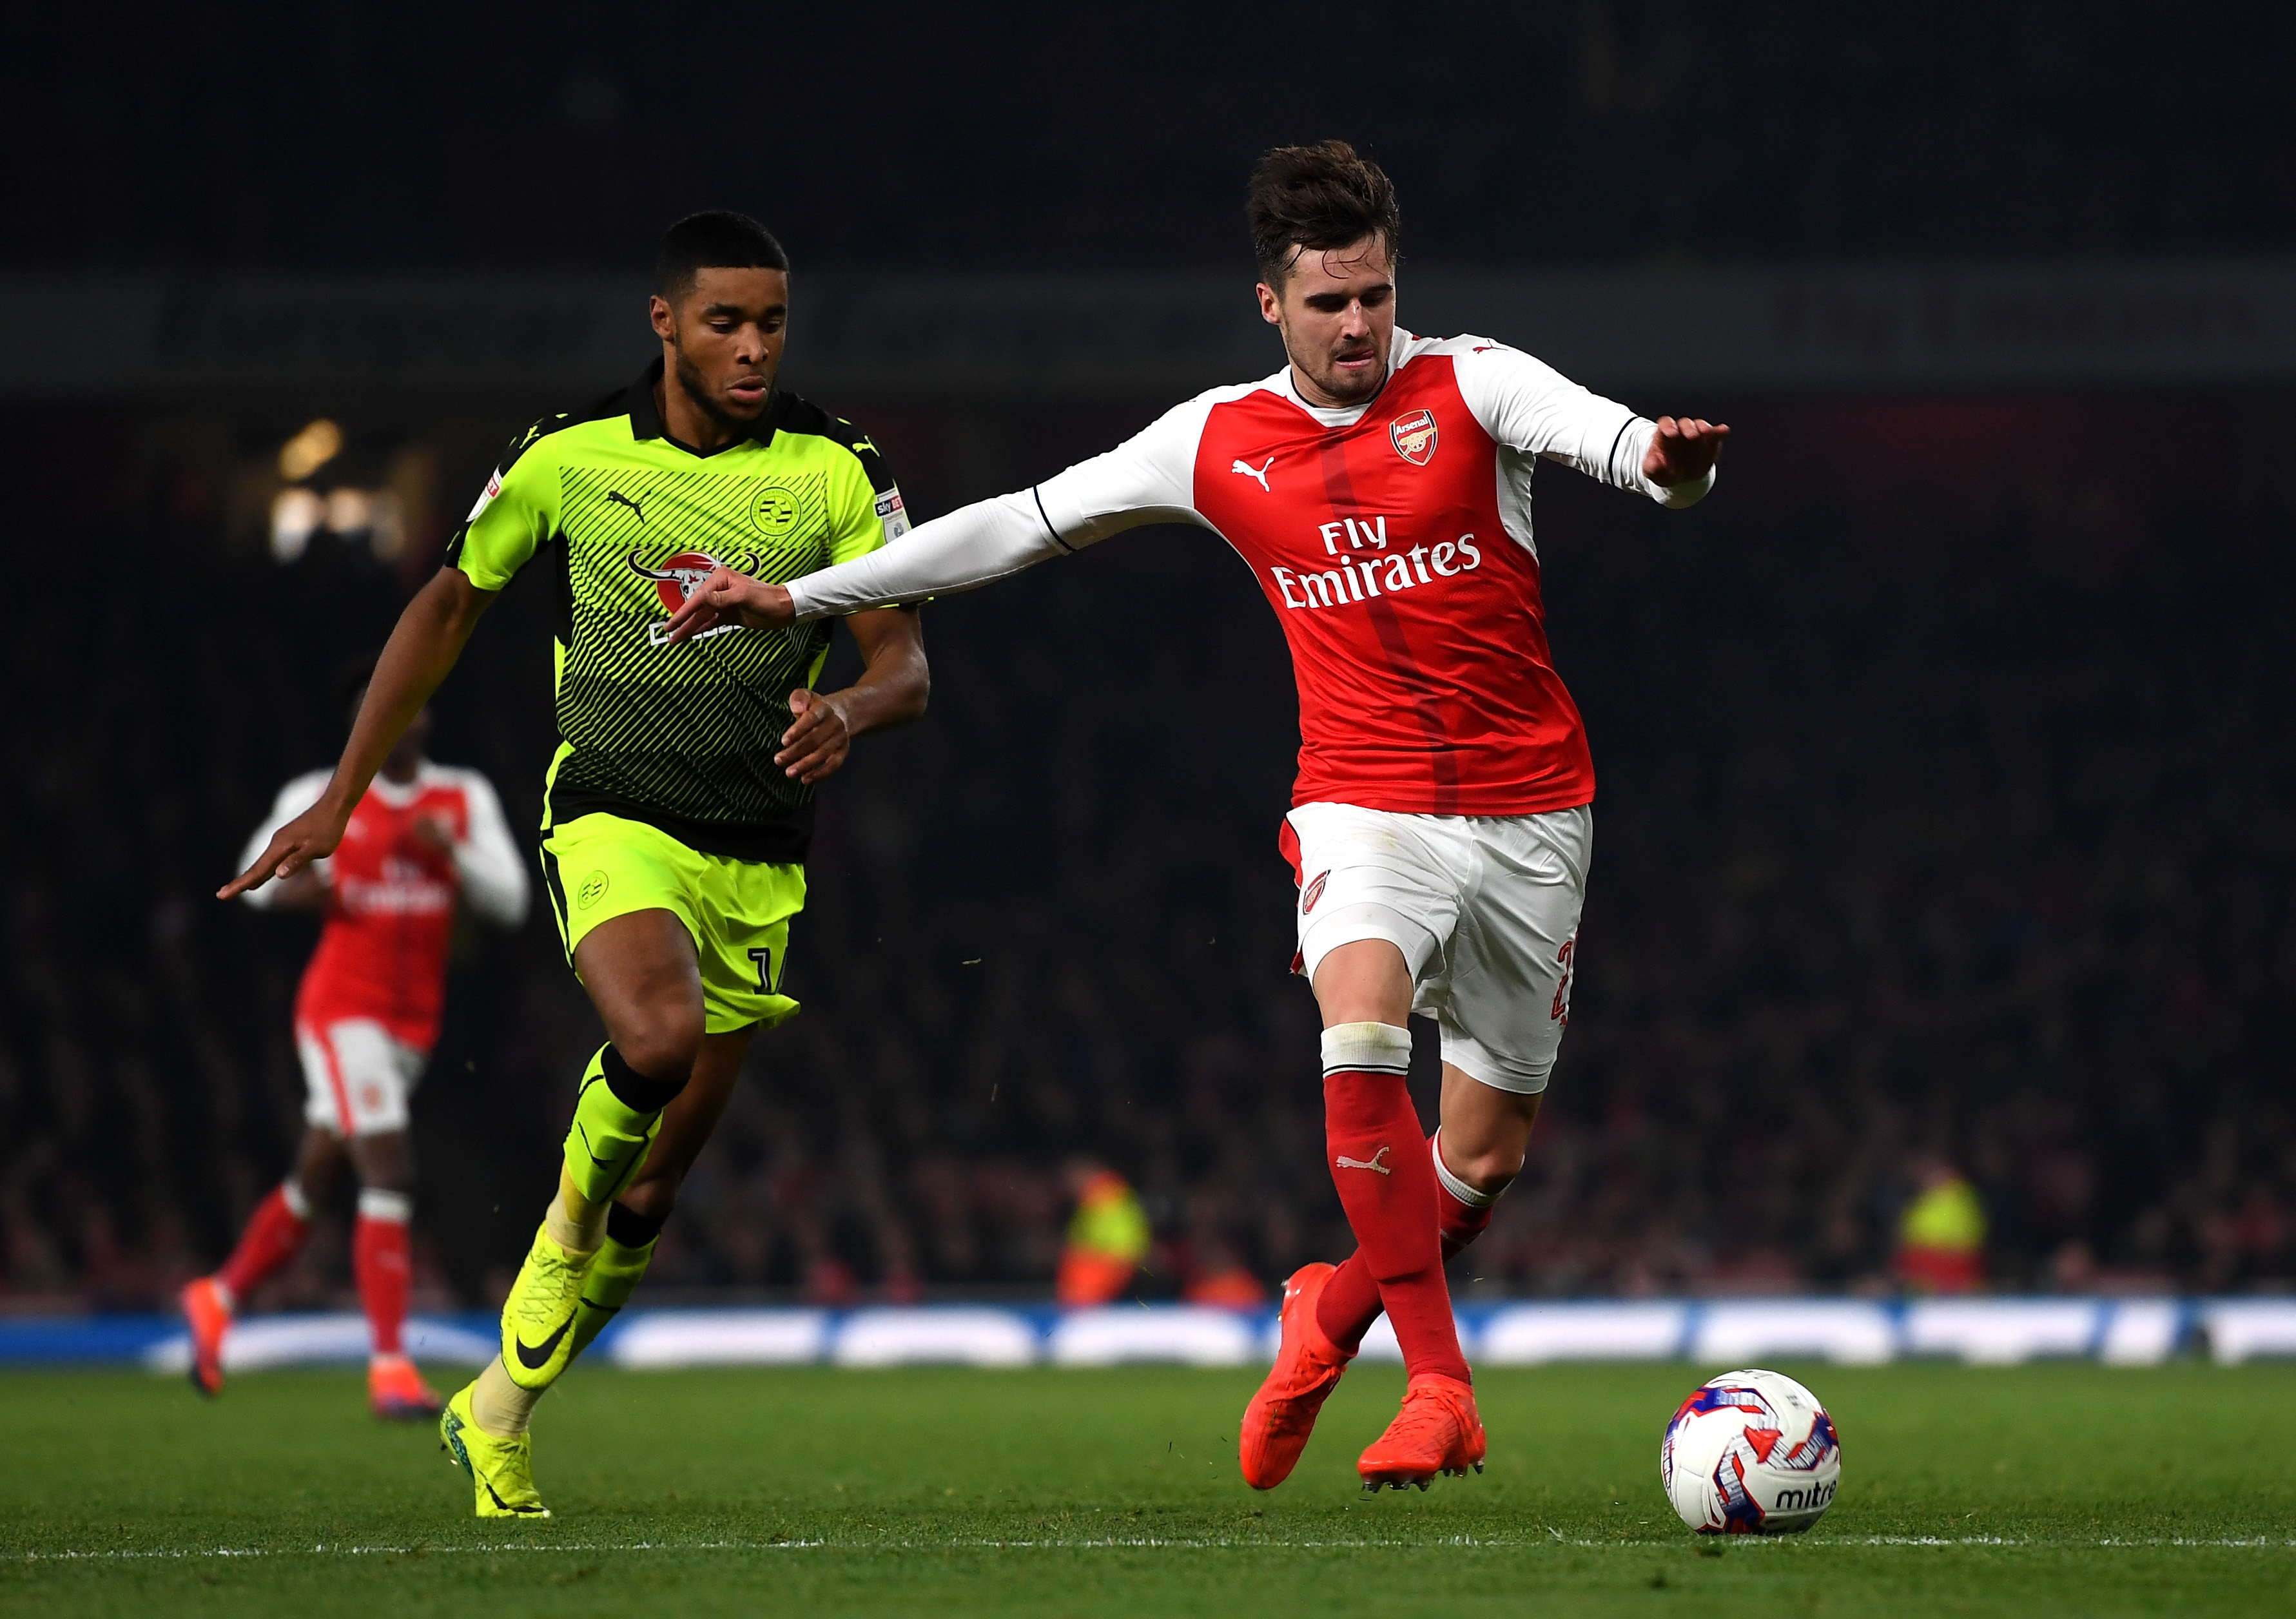 LONDON, ENGLAND - OCTOBER 25: Carl Jenkinson of Arsenal (R) is chased by Dominic Samuel of Reading (L) during the EFL Cup fourth round match between Arsenal and Reading at Emirates Stadium on October 25, 2016 in London, England. (Photo courtesy Michael Regan/Getty Images)